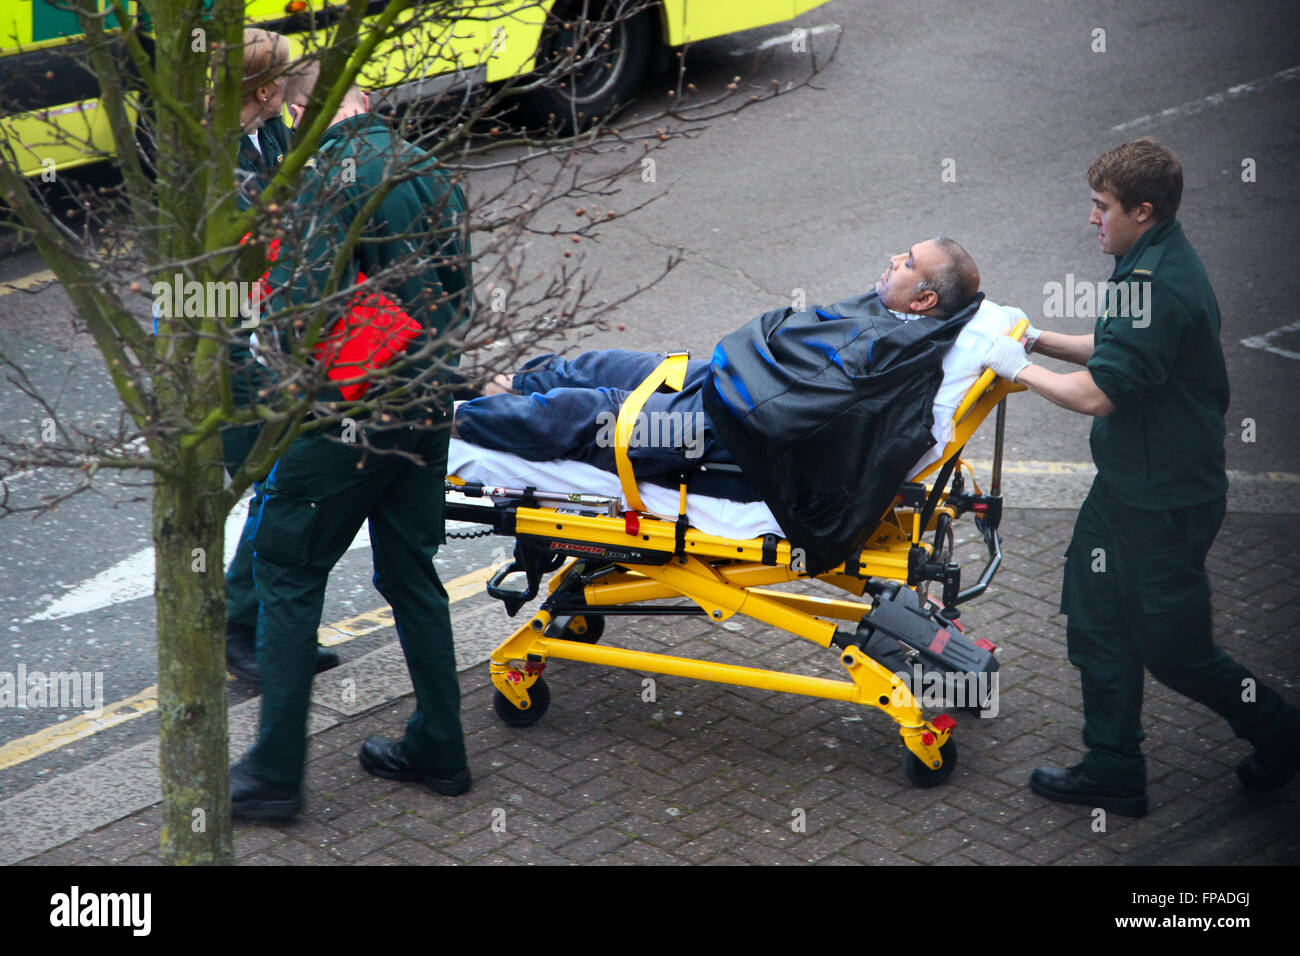 Paramedics wheeling patient on a stretcher into an ambulance in a residential area of North London - Stock Image